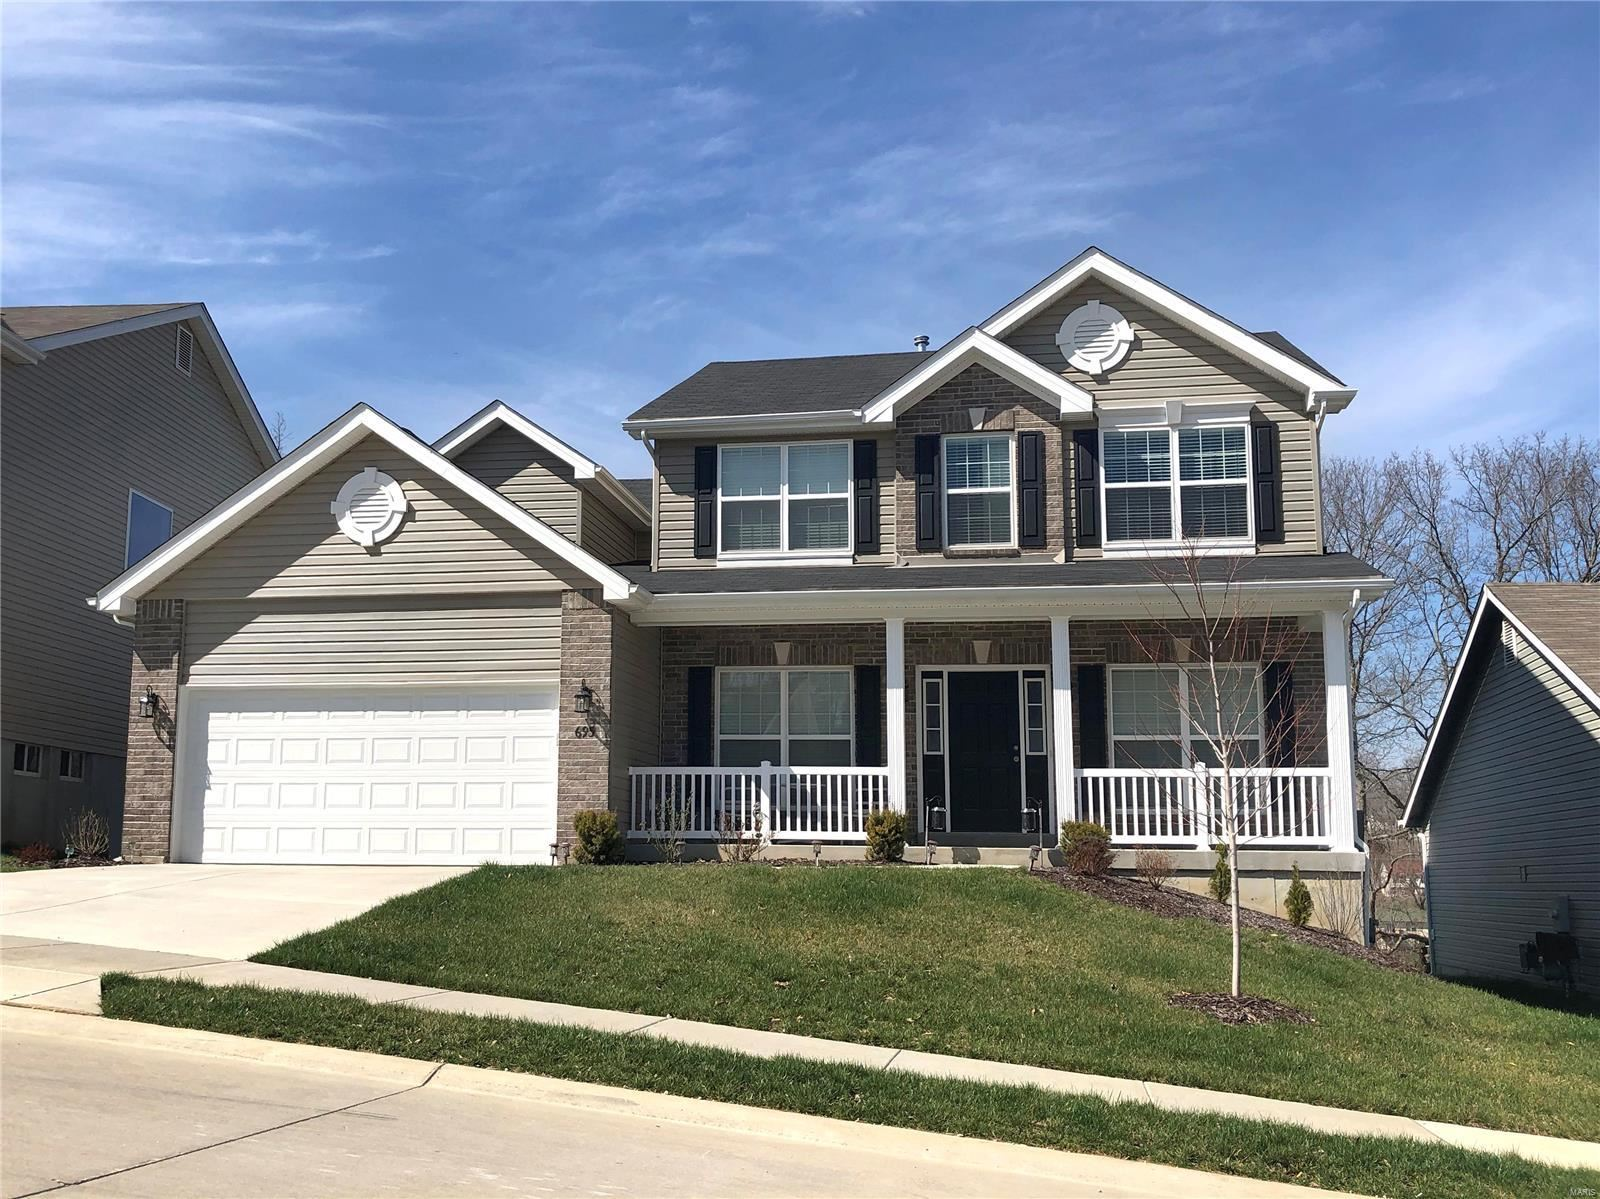 1 Hermitage II at Liberty Estate, Foristell, MO 63348 - MLS#: 21054217